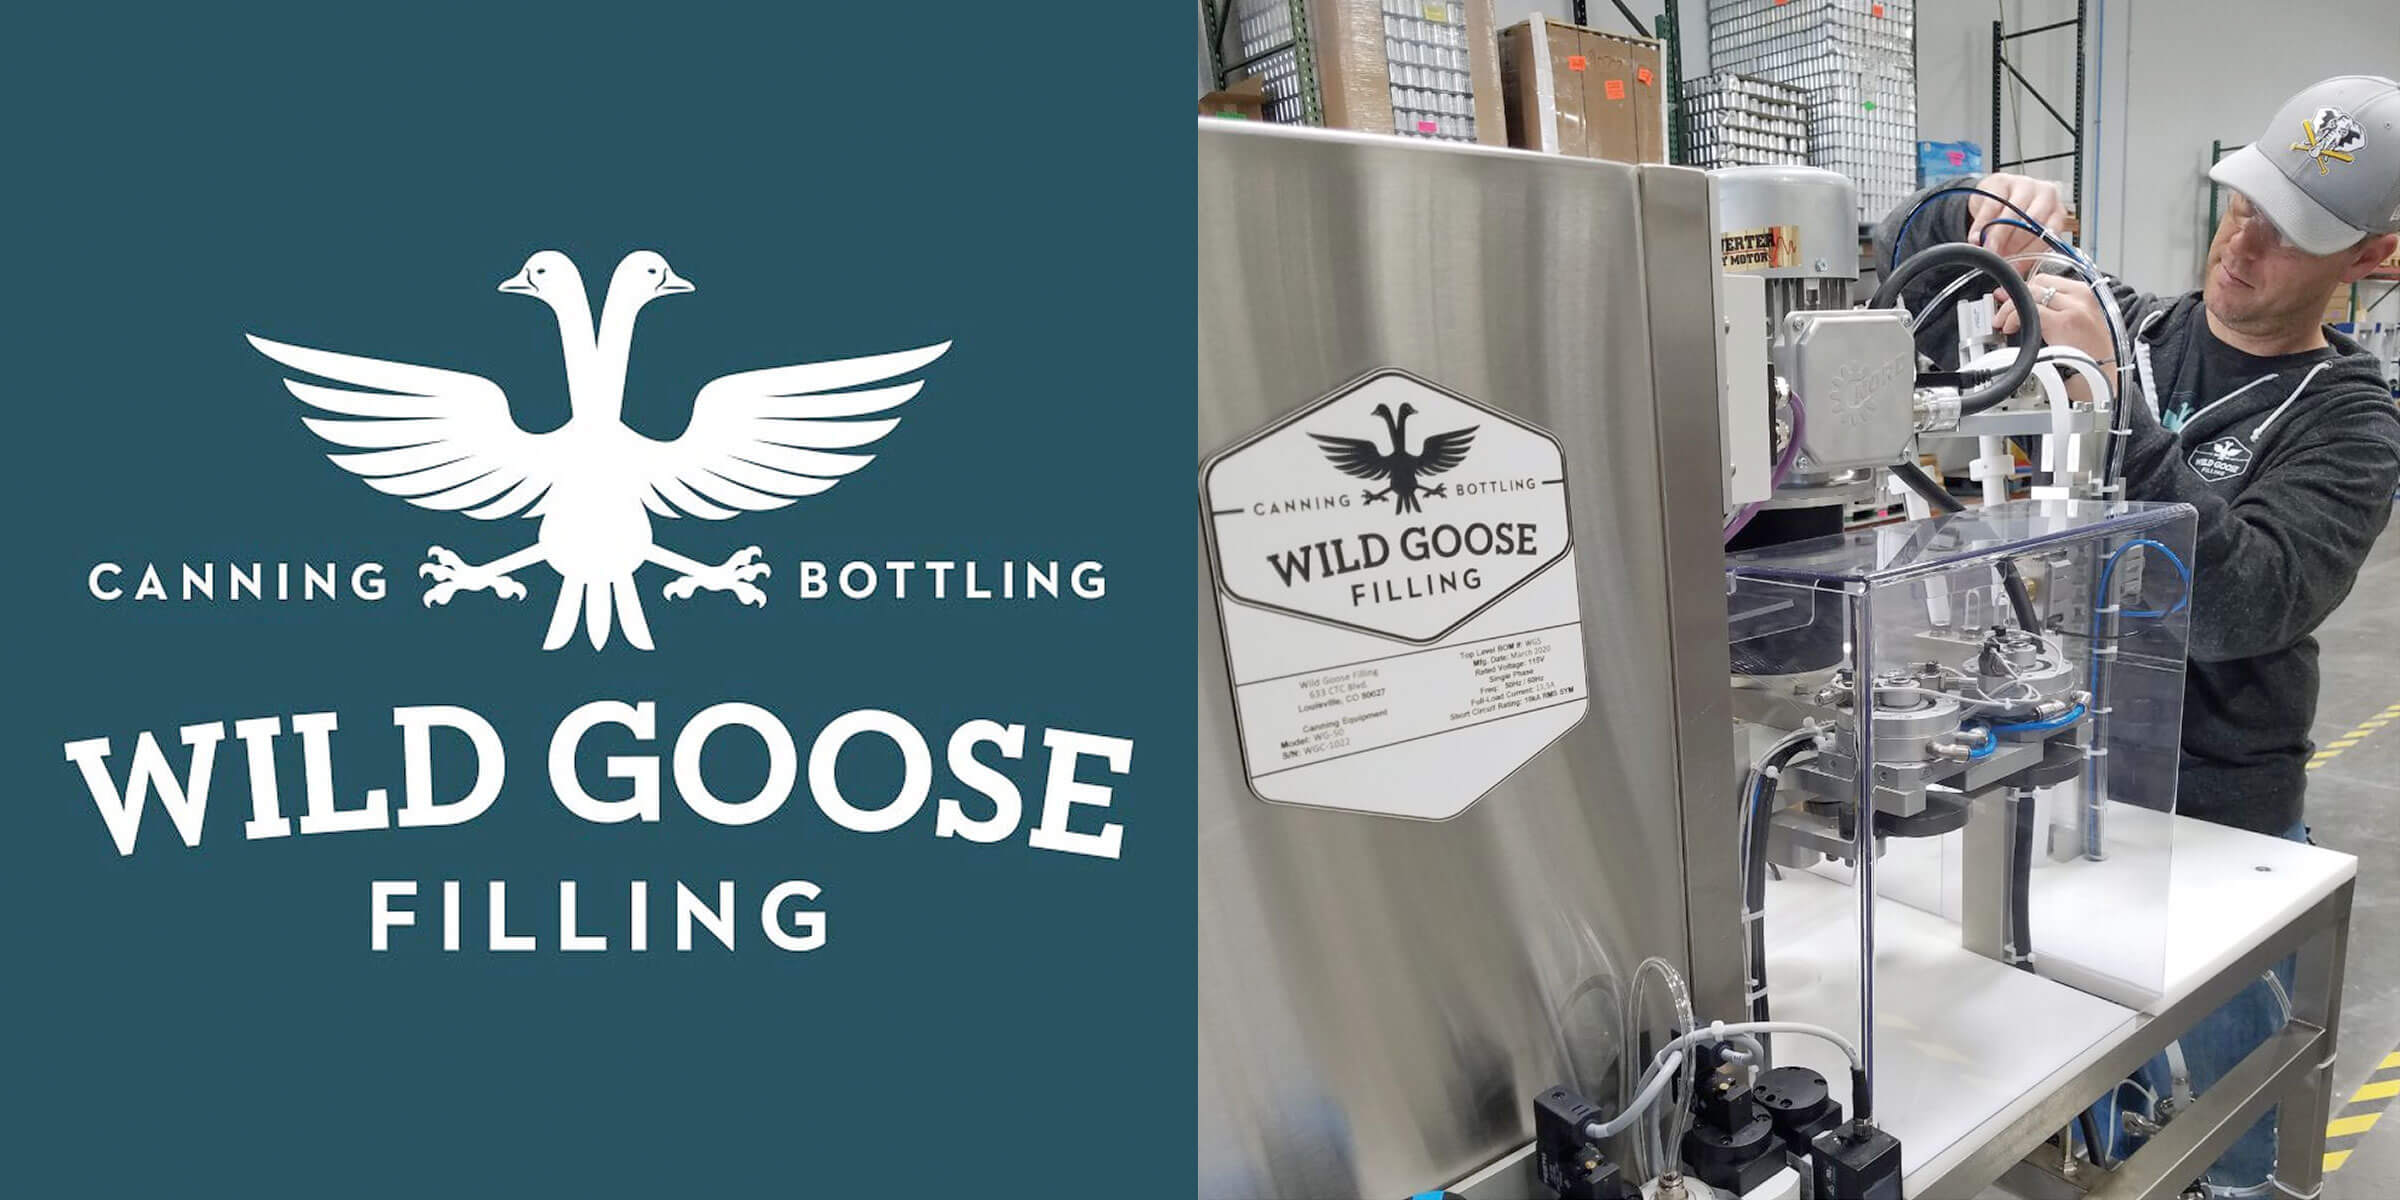 The coronavirus pandemic has increased demand for canning and bottling systems, and Wild Goose Filling has ramped up production to meet the demand.